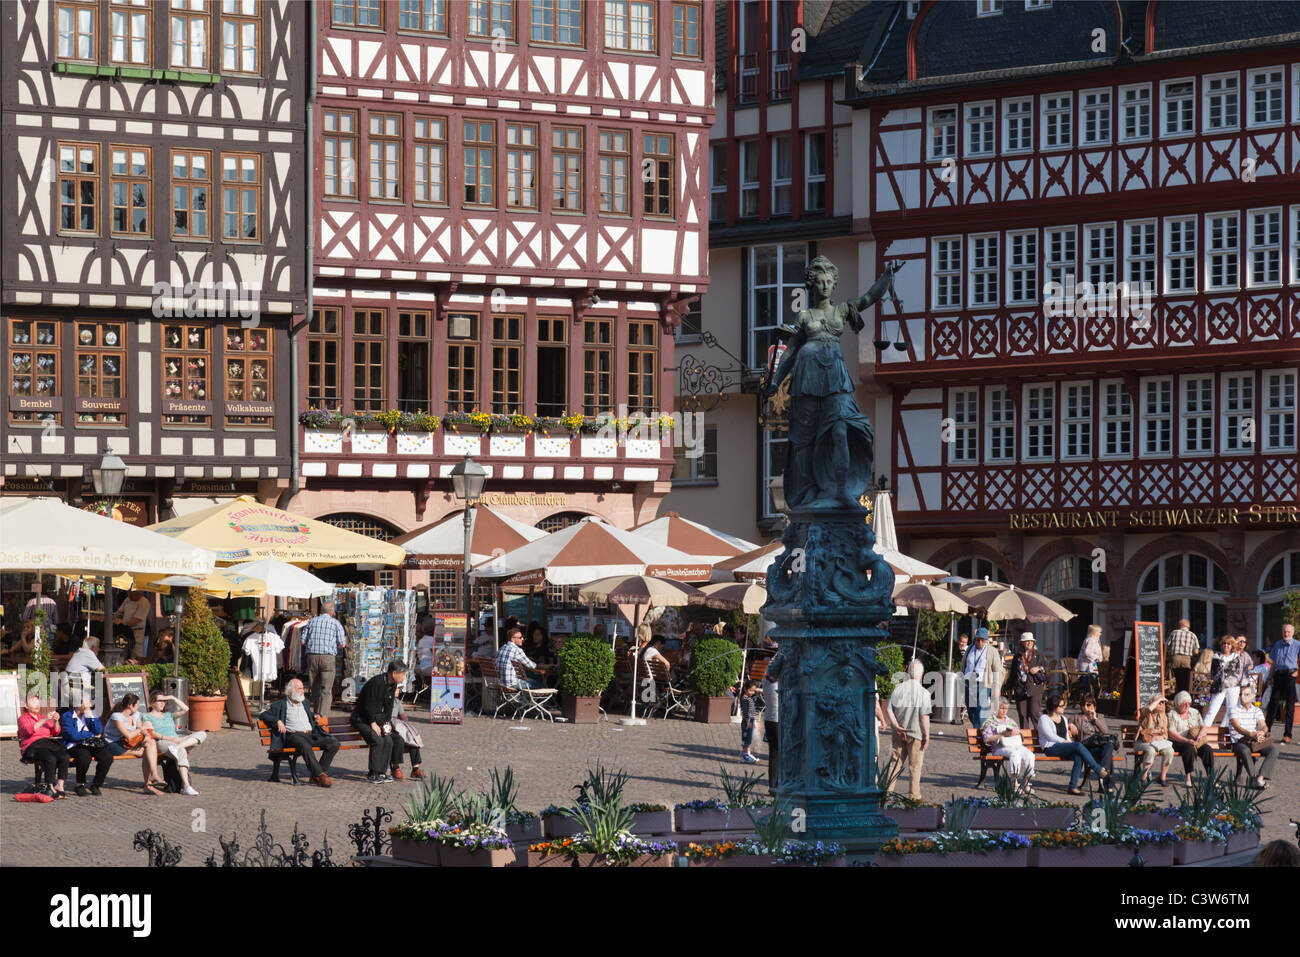 A Spring view of Frankfurt Römer (Römerberg), one of the more historical sqaures in the city. - Stock Image